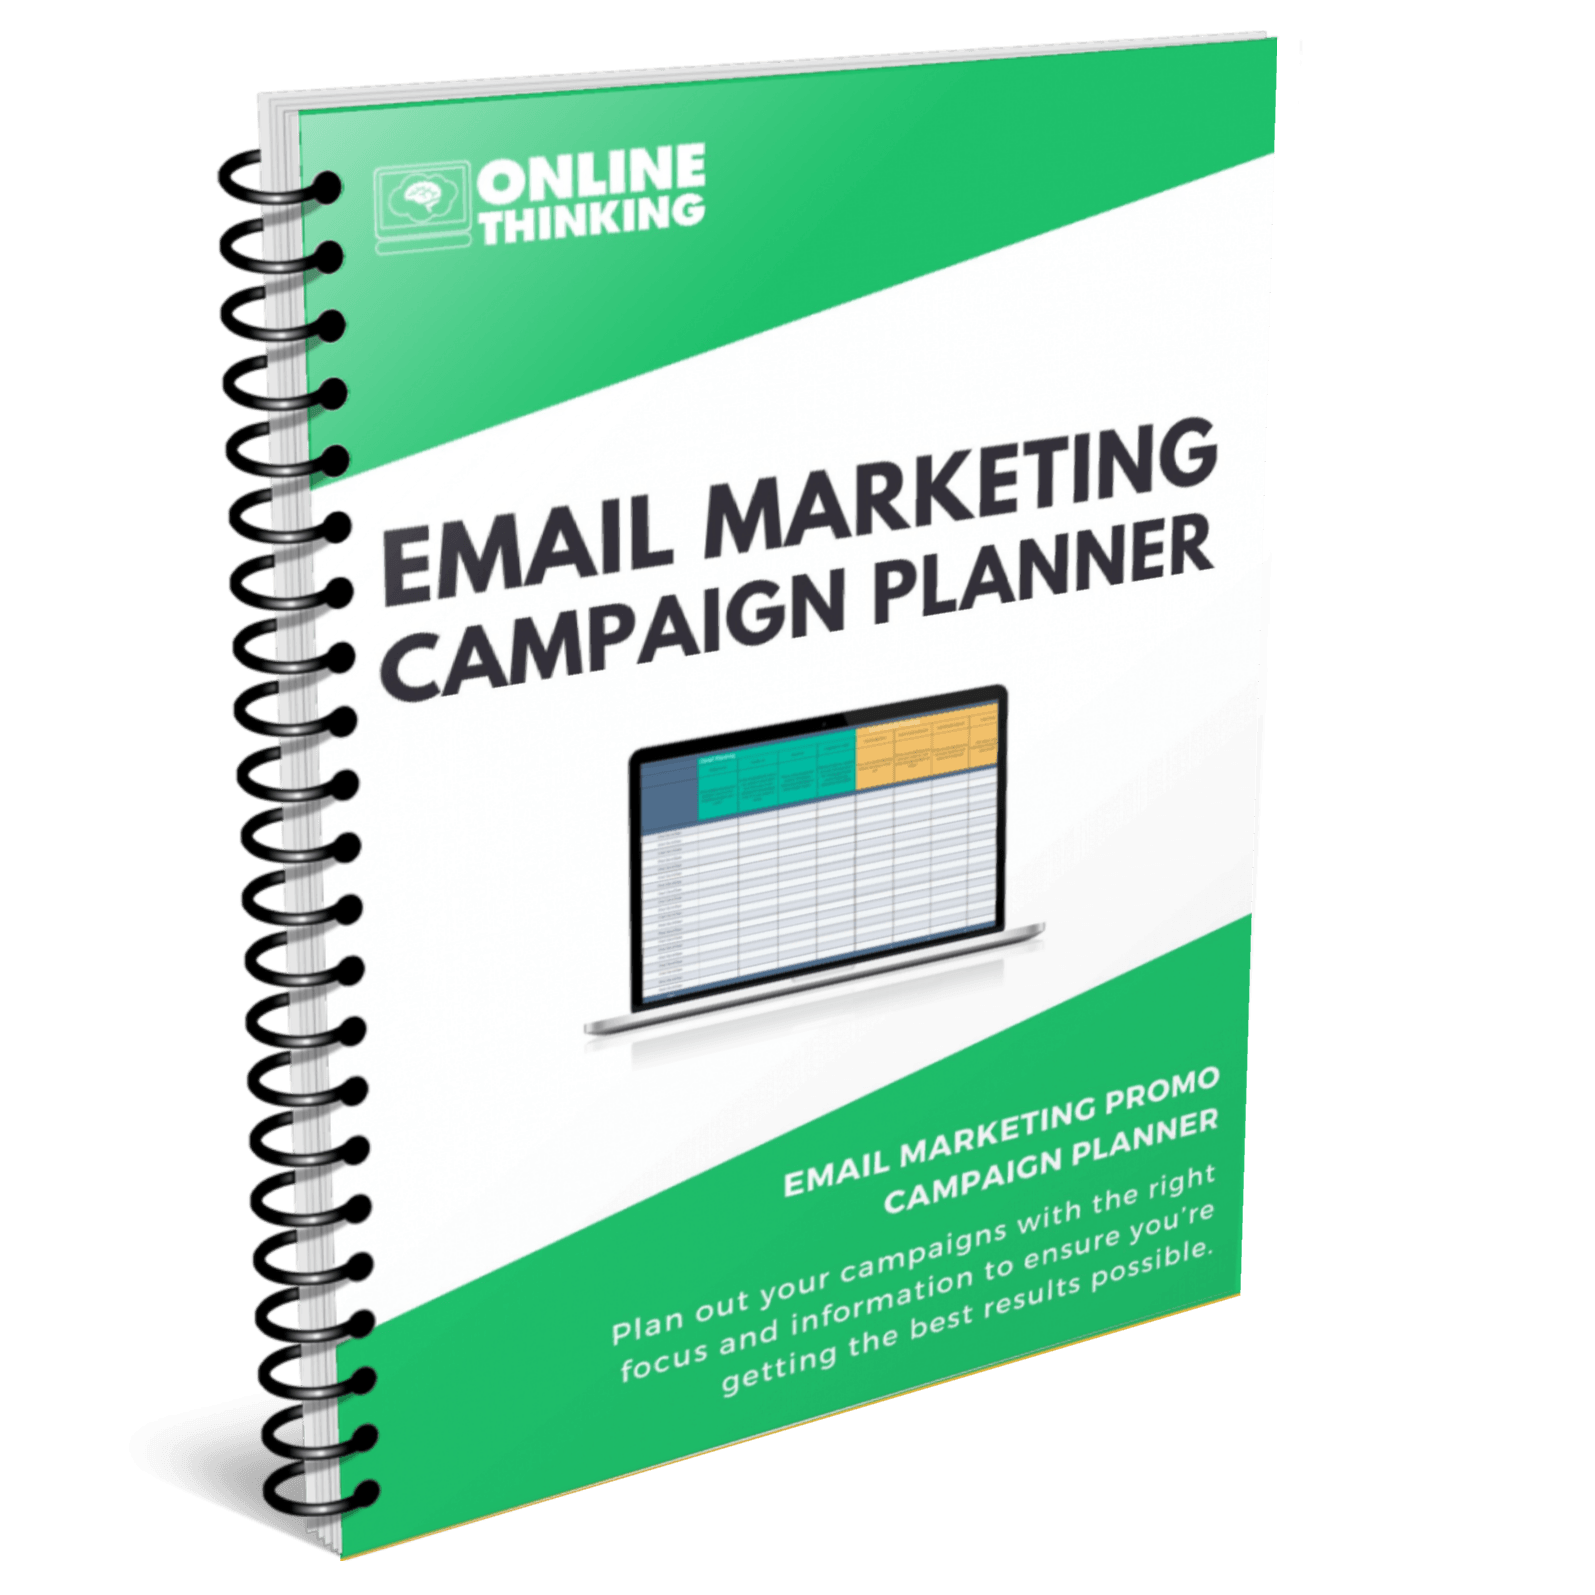 Email Marketing Campaign Planner